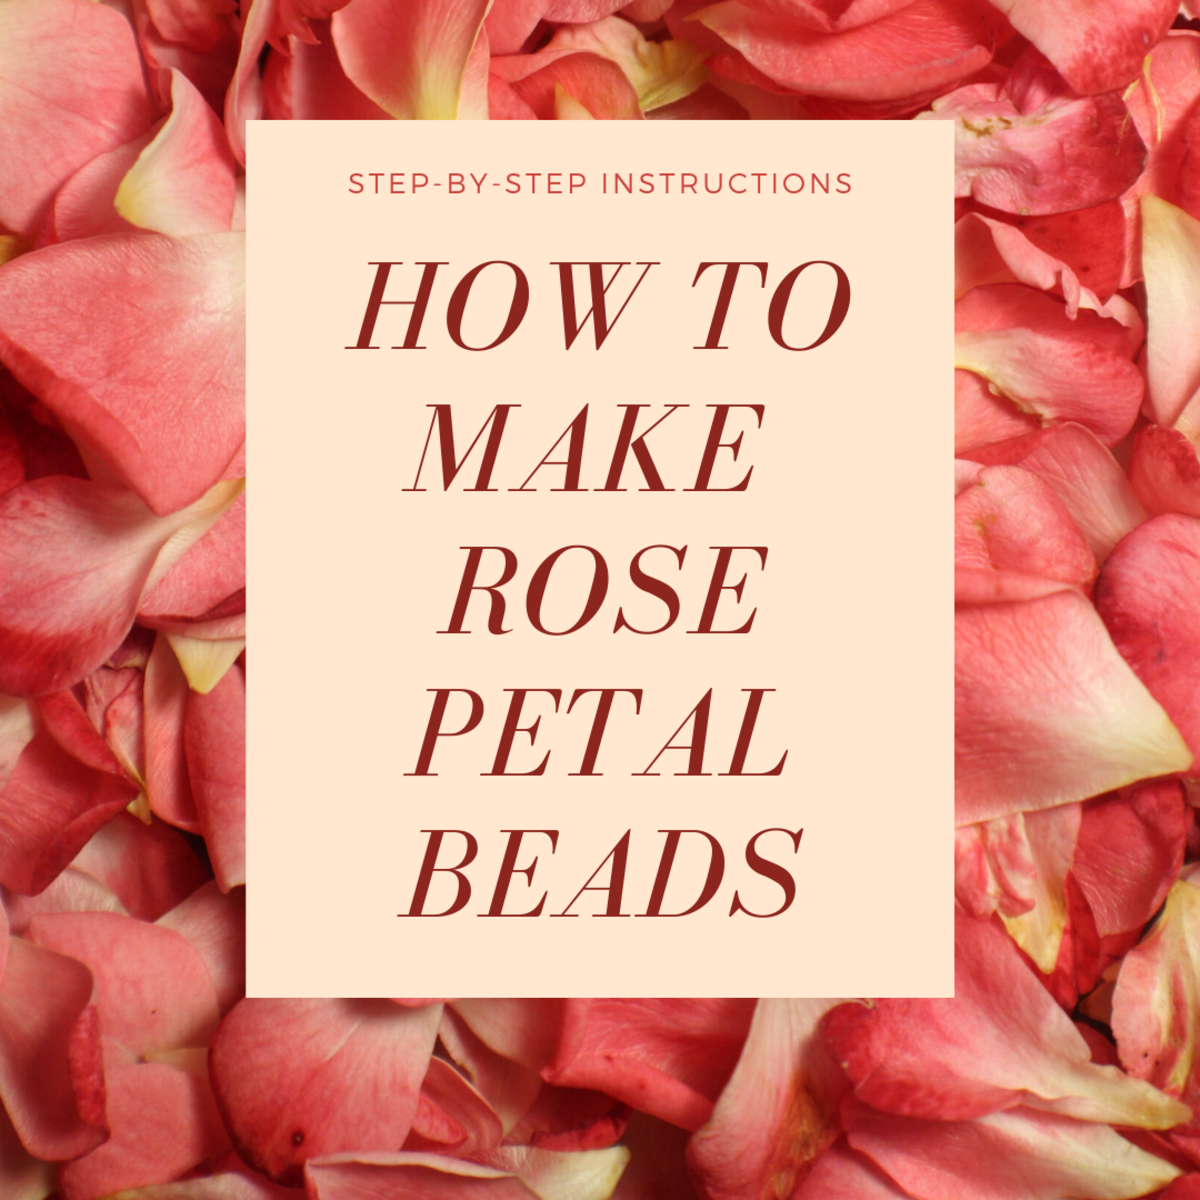 How to Make Rose Beads at Home